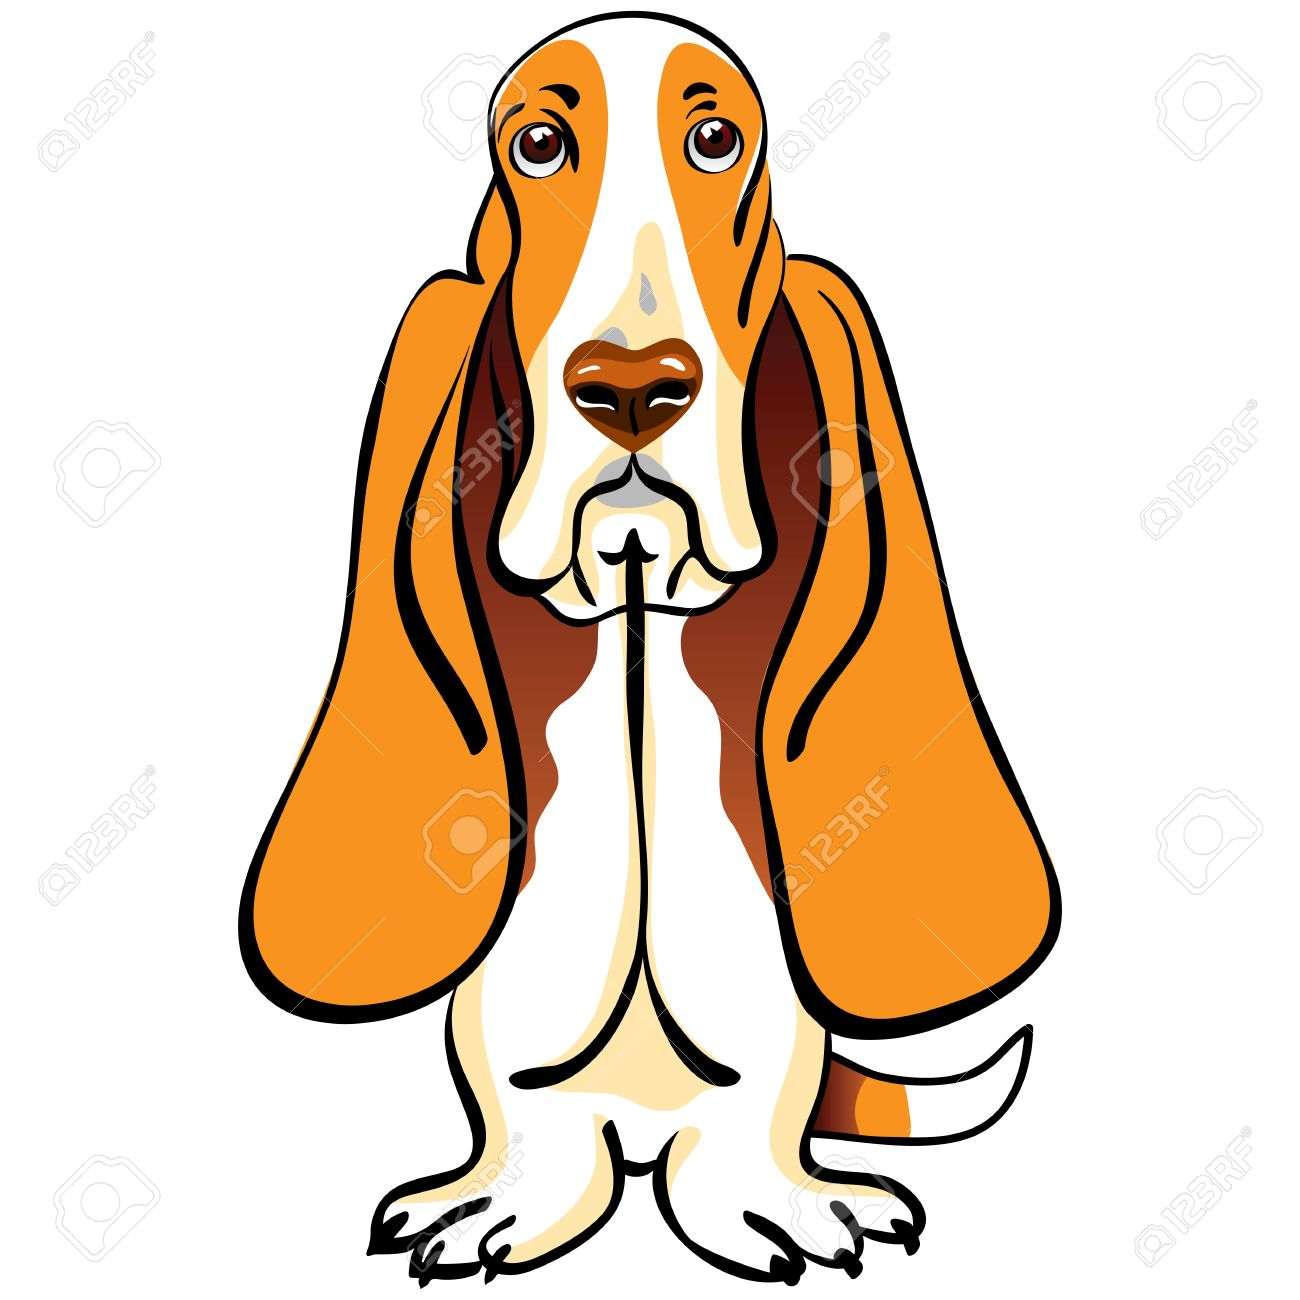 basset hound images u0026 stock pictures royalty free basset hound